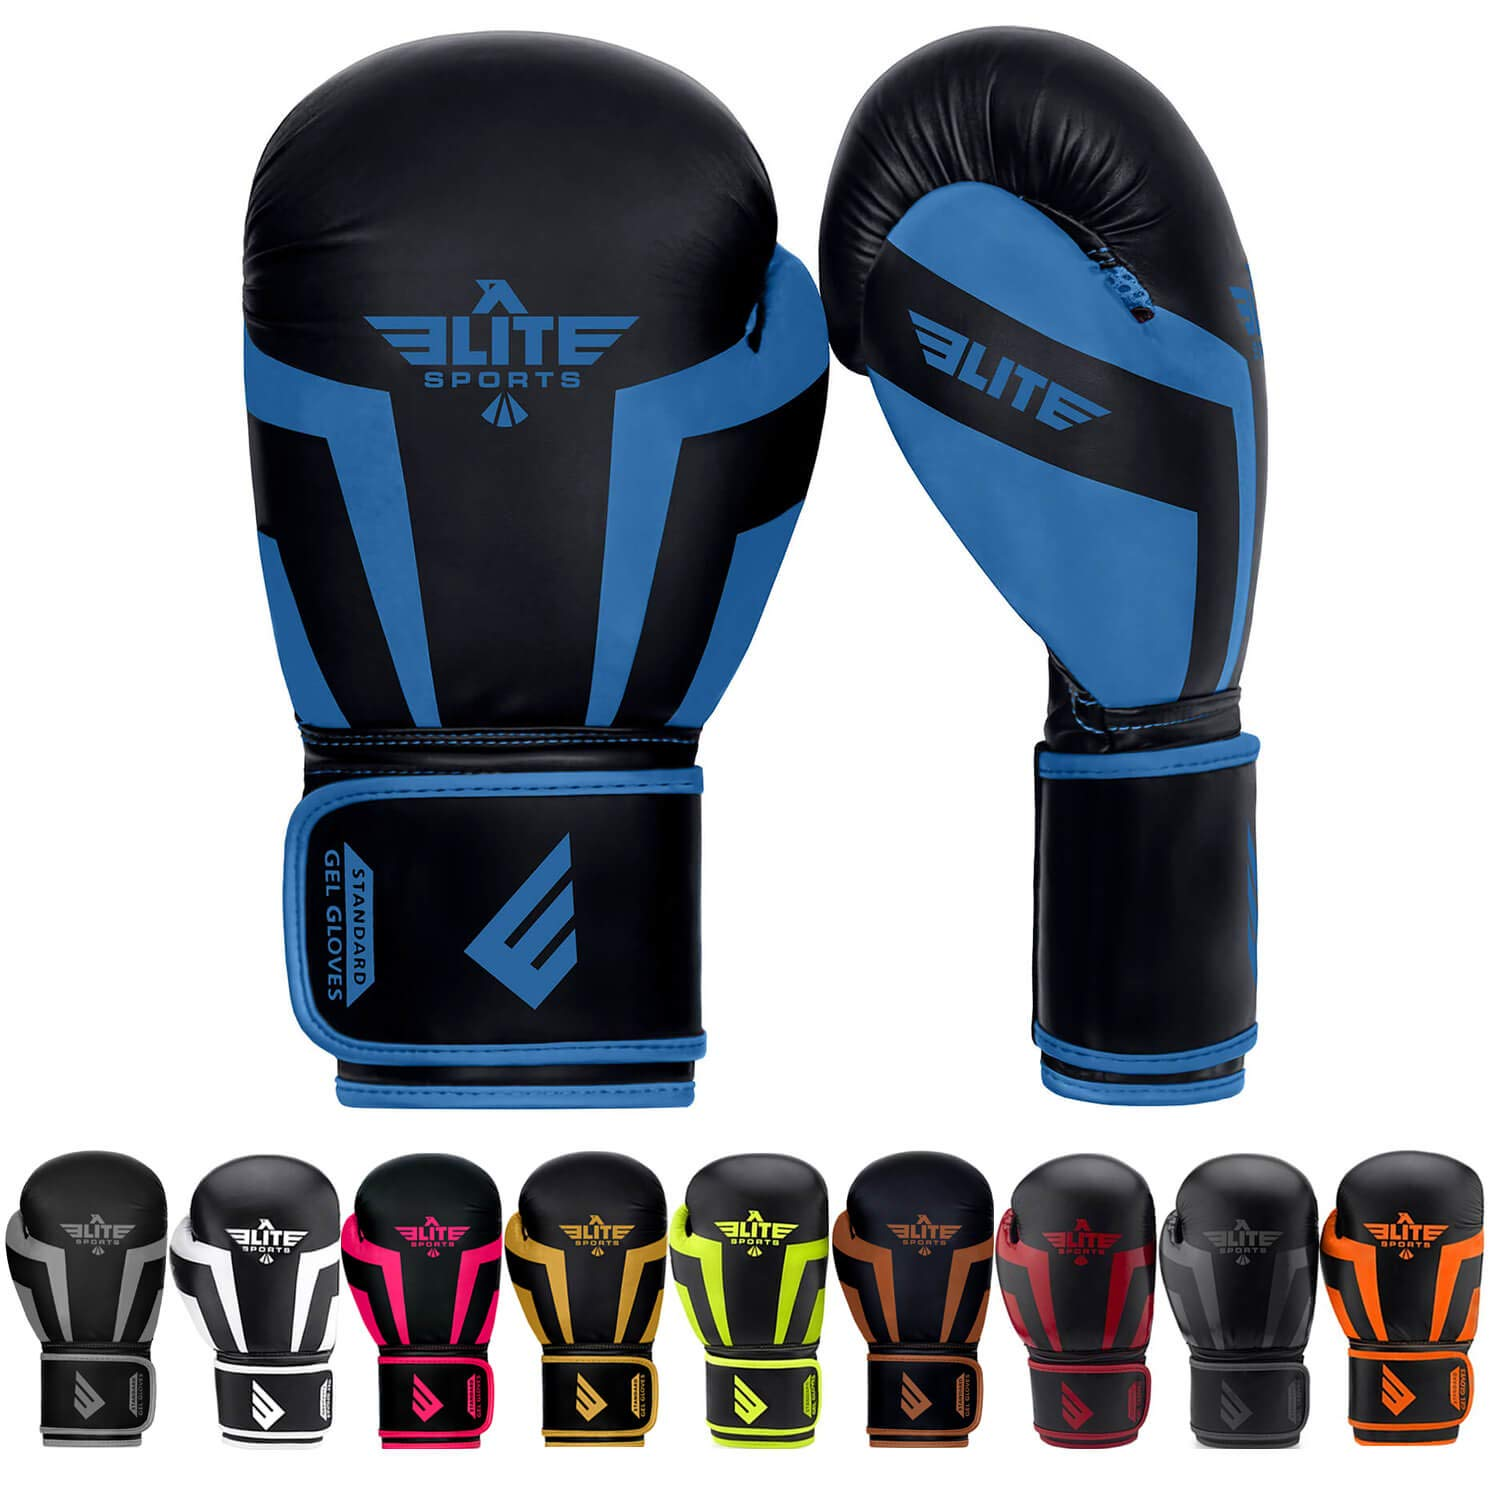 Leather Grappling Gloves Cage Fight MMA Muay Thai Boxing Gloves LOW PRICE